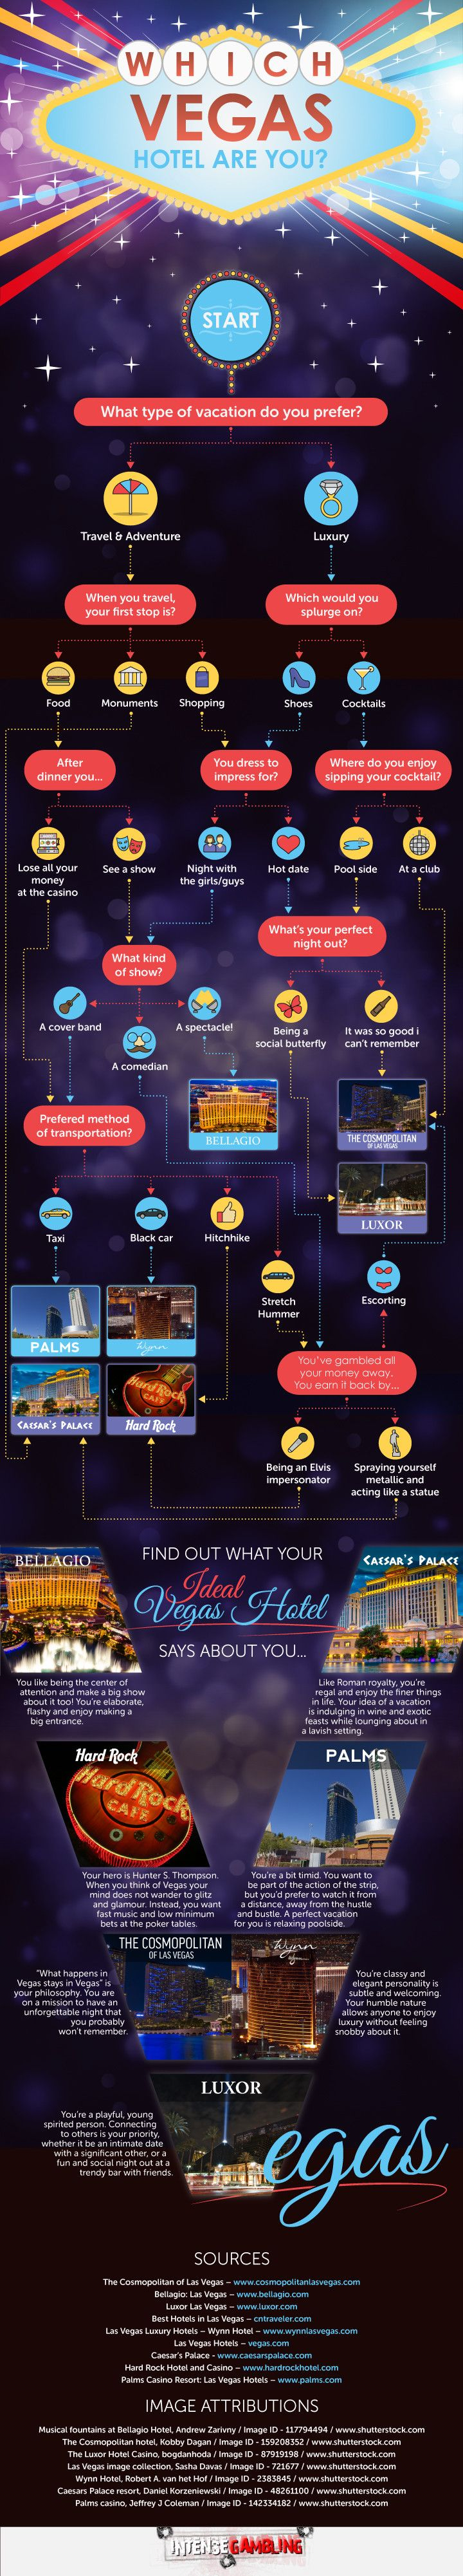 Which Vegas Hotel Are You? #infographic #LasVegas #Travel #Hotel